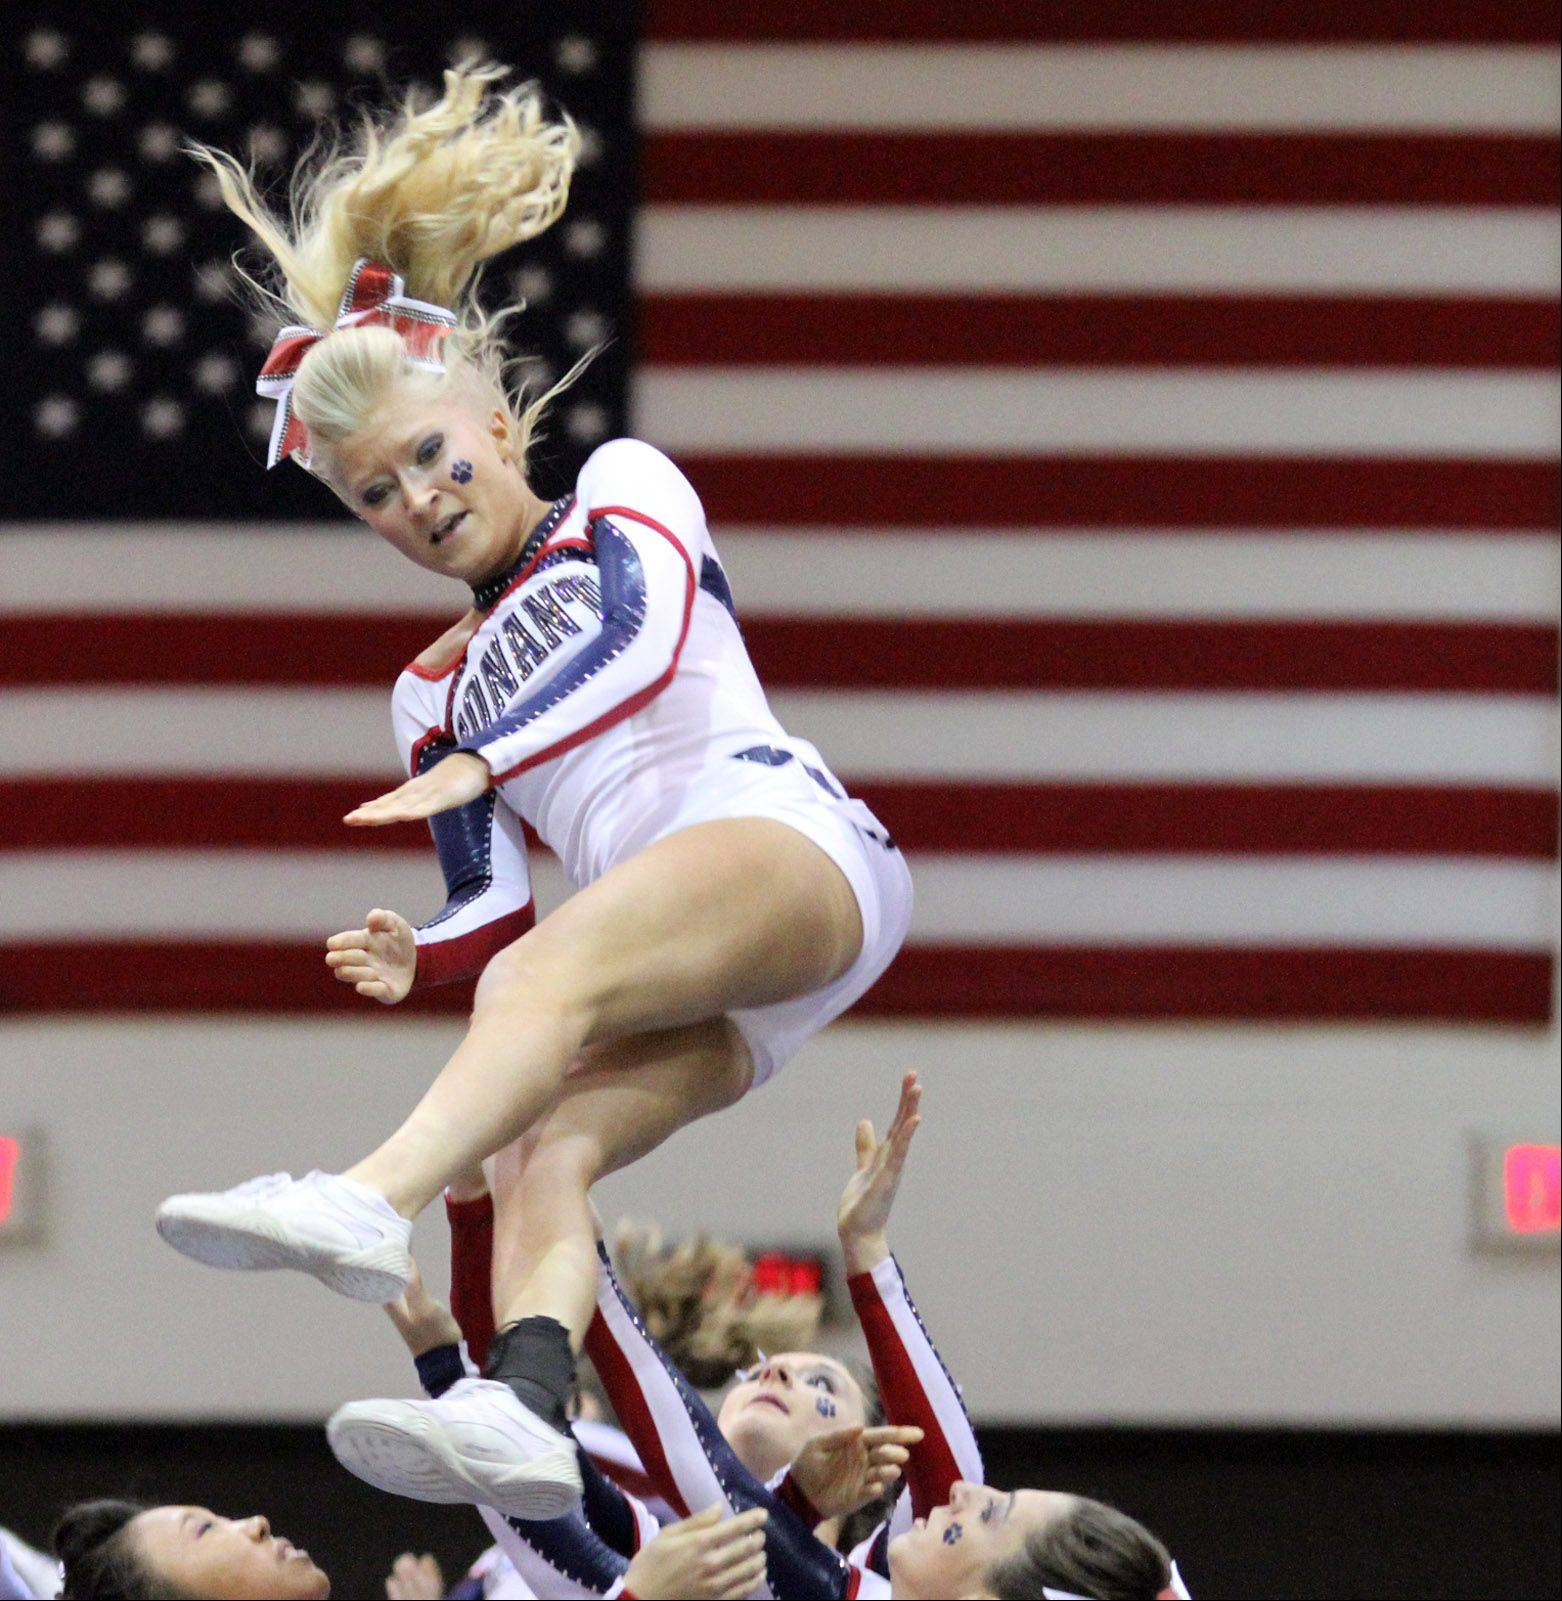 Conant High School performs at the IHSA competitive cheerleading sectionals in Rolling Meadows on Saturday.